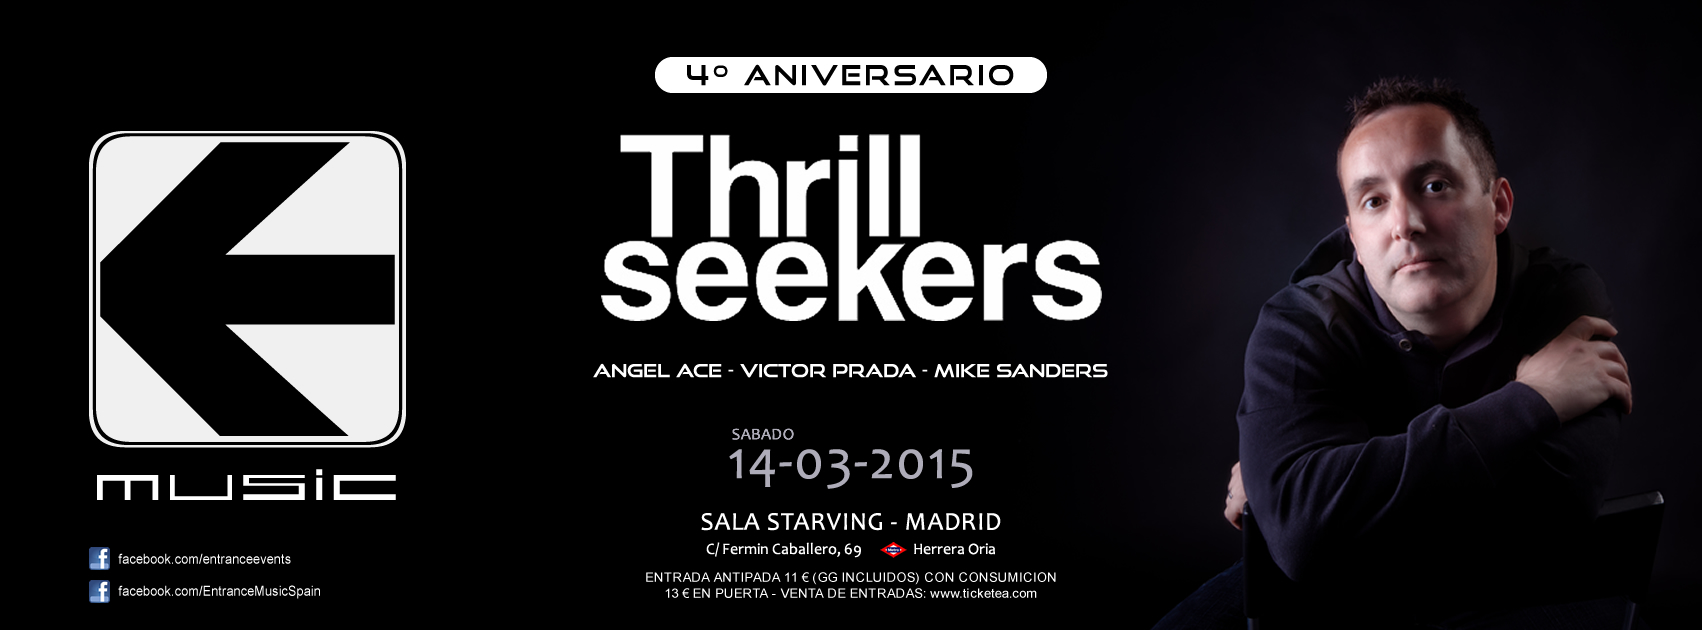 Entrance cuarto aniversario con Thrillseekers